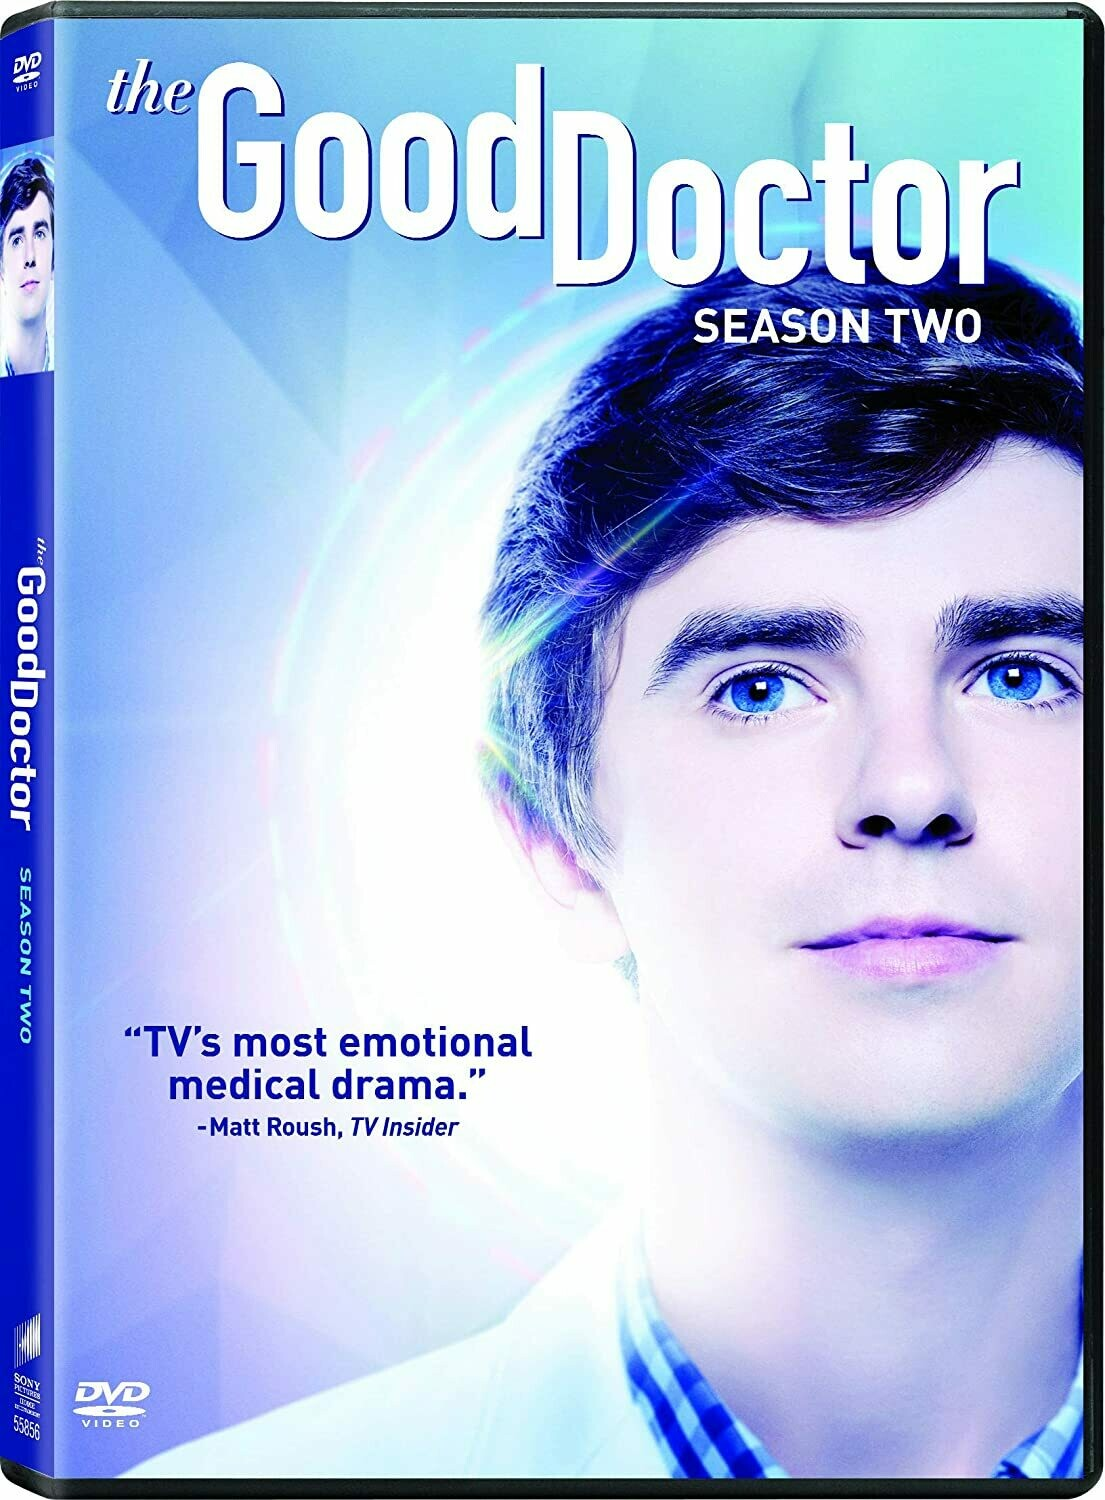 Good Doctor Season Two (7 day rental)